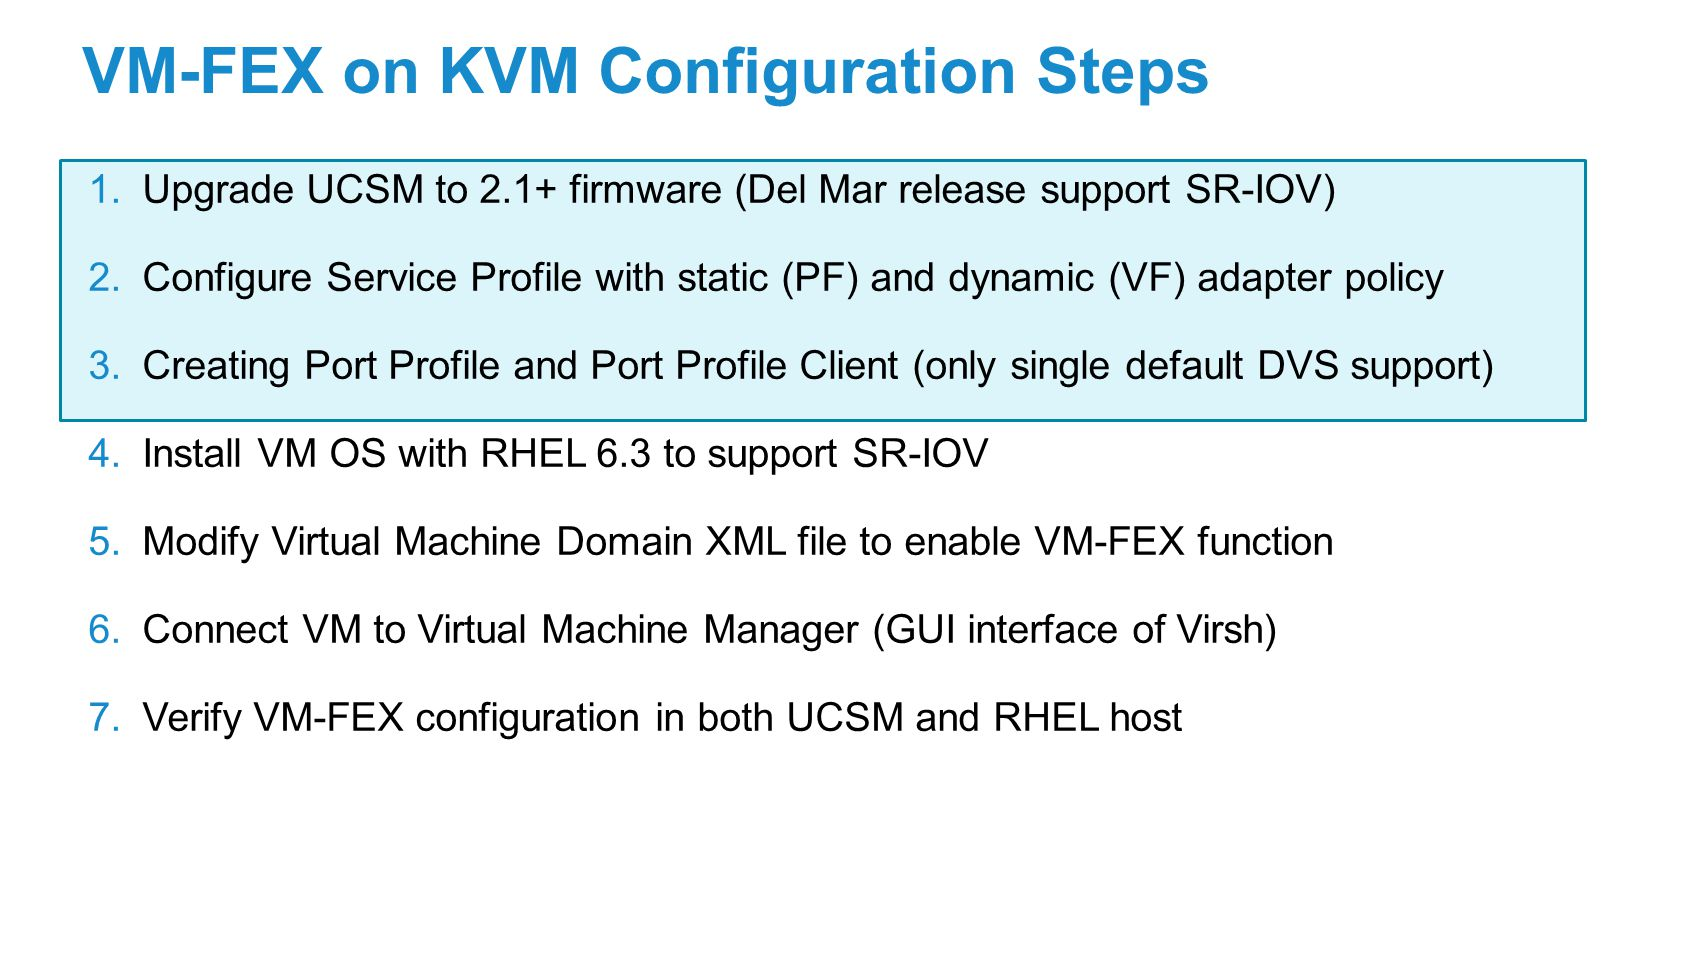 VM-FEX on KVM Configuration Steps 1.Upgrade UCSM to 2.1+ firmware (Del Mar release support SR-IOV) 2.Configure Service Profile with static (PF) and dy